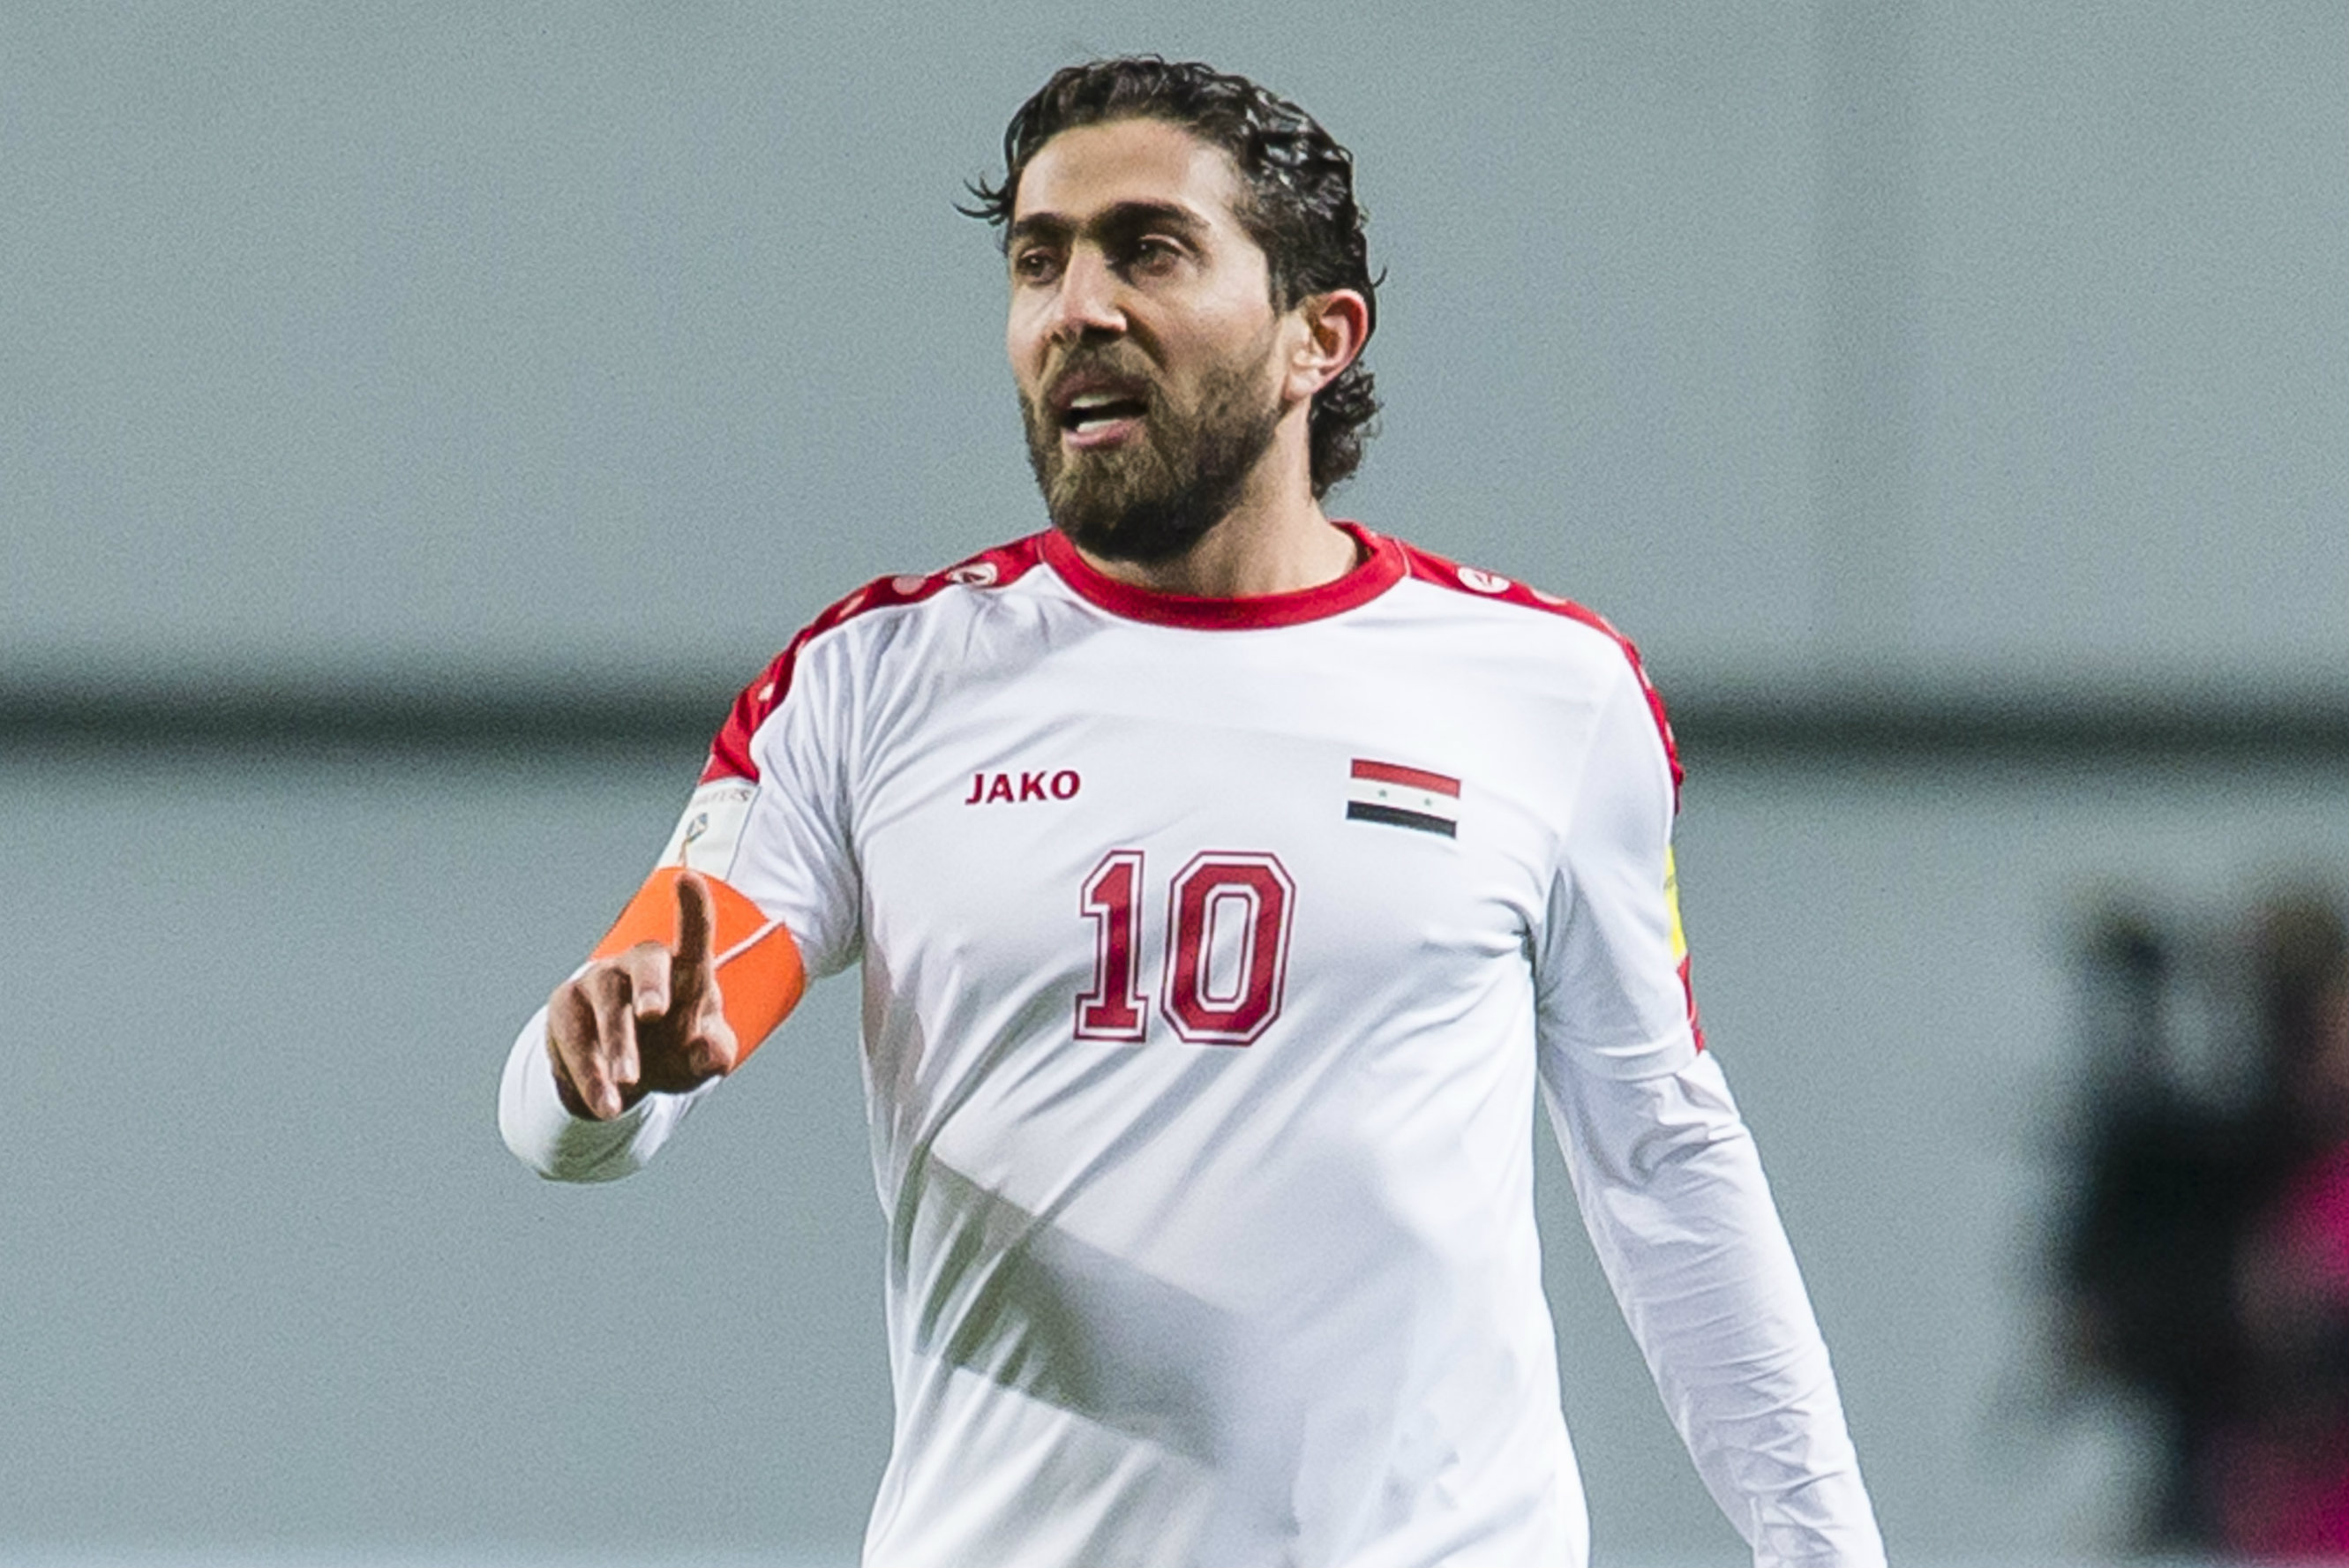 Firas Khatib's goals have been vital for Syria in qualifying.